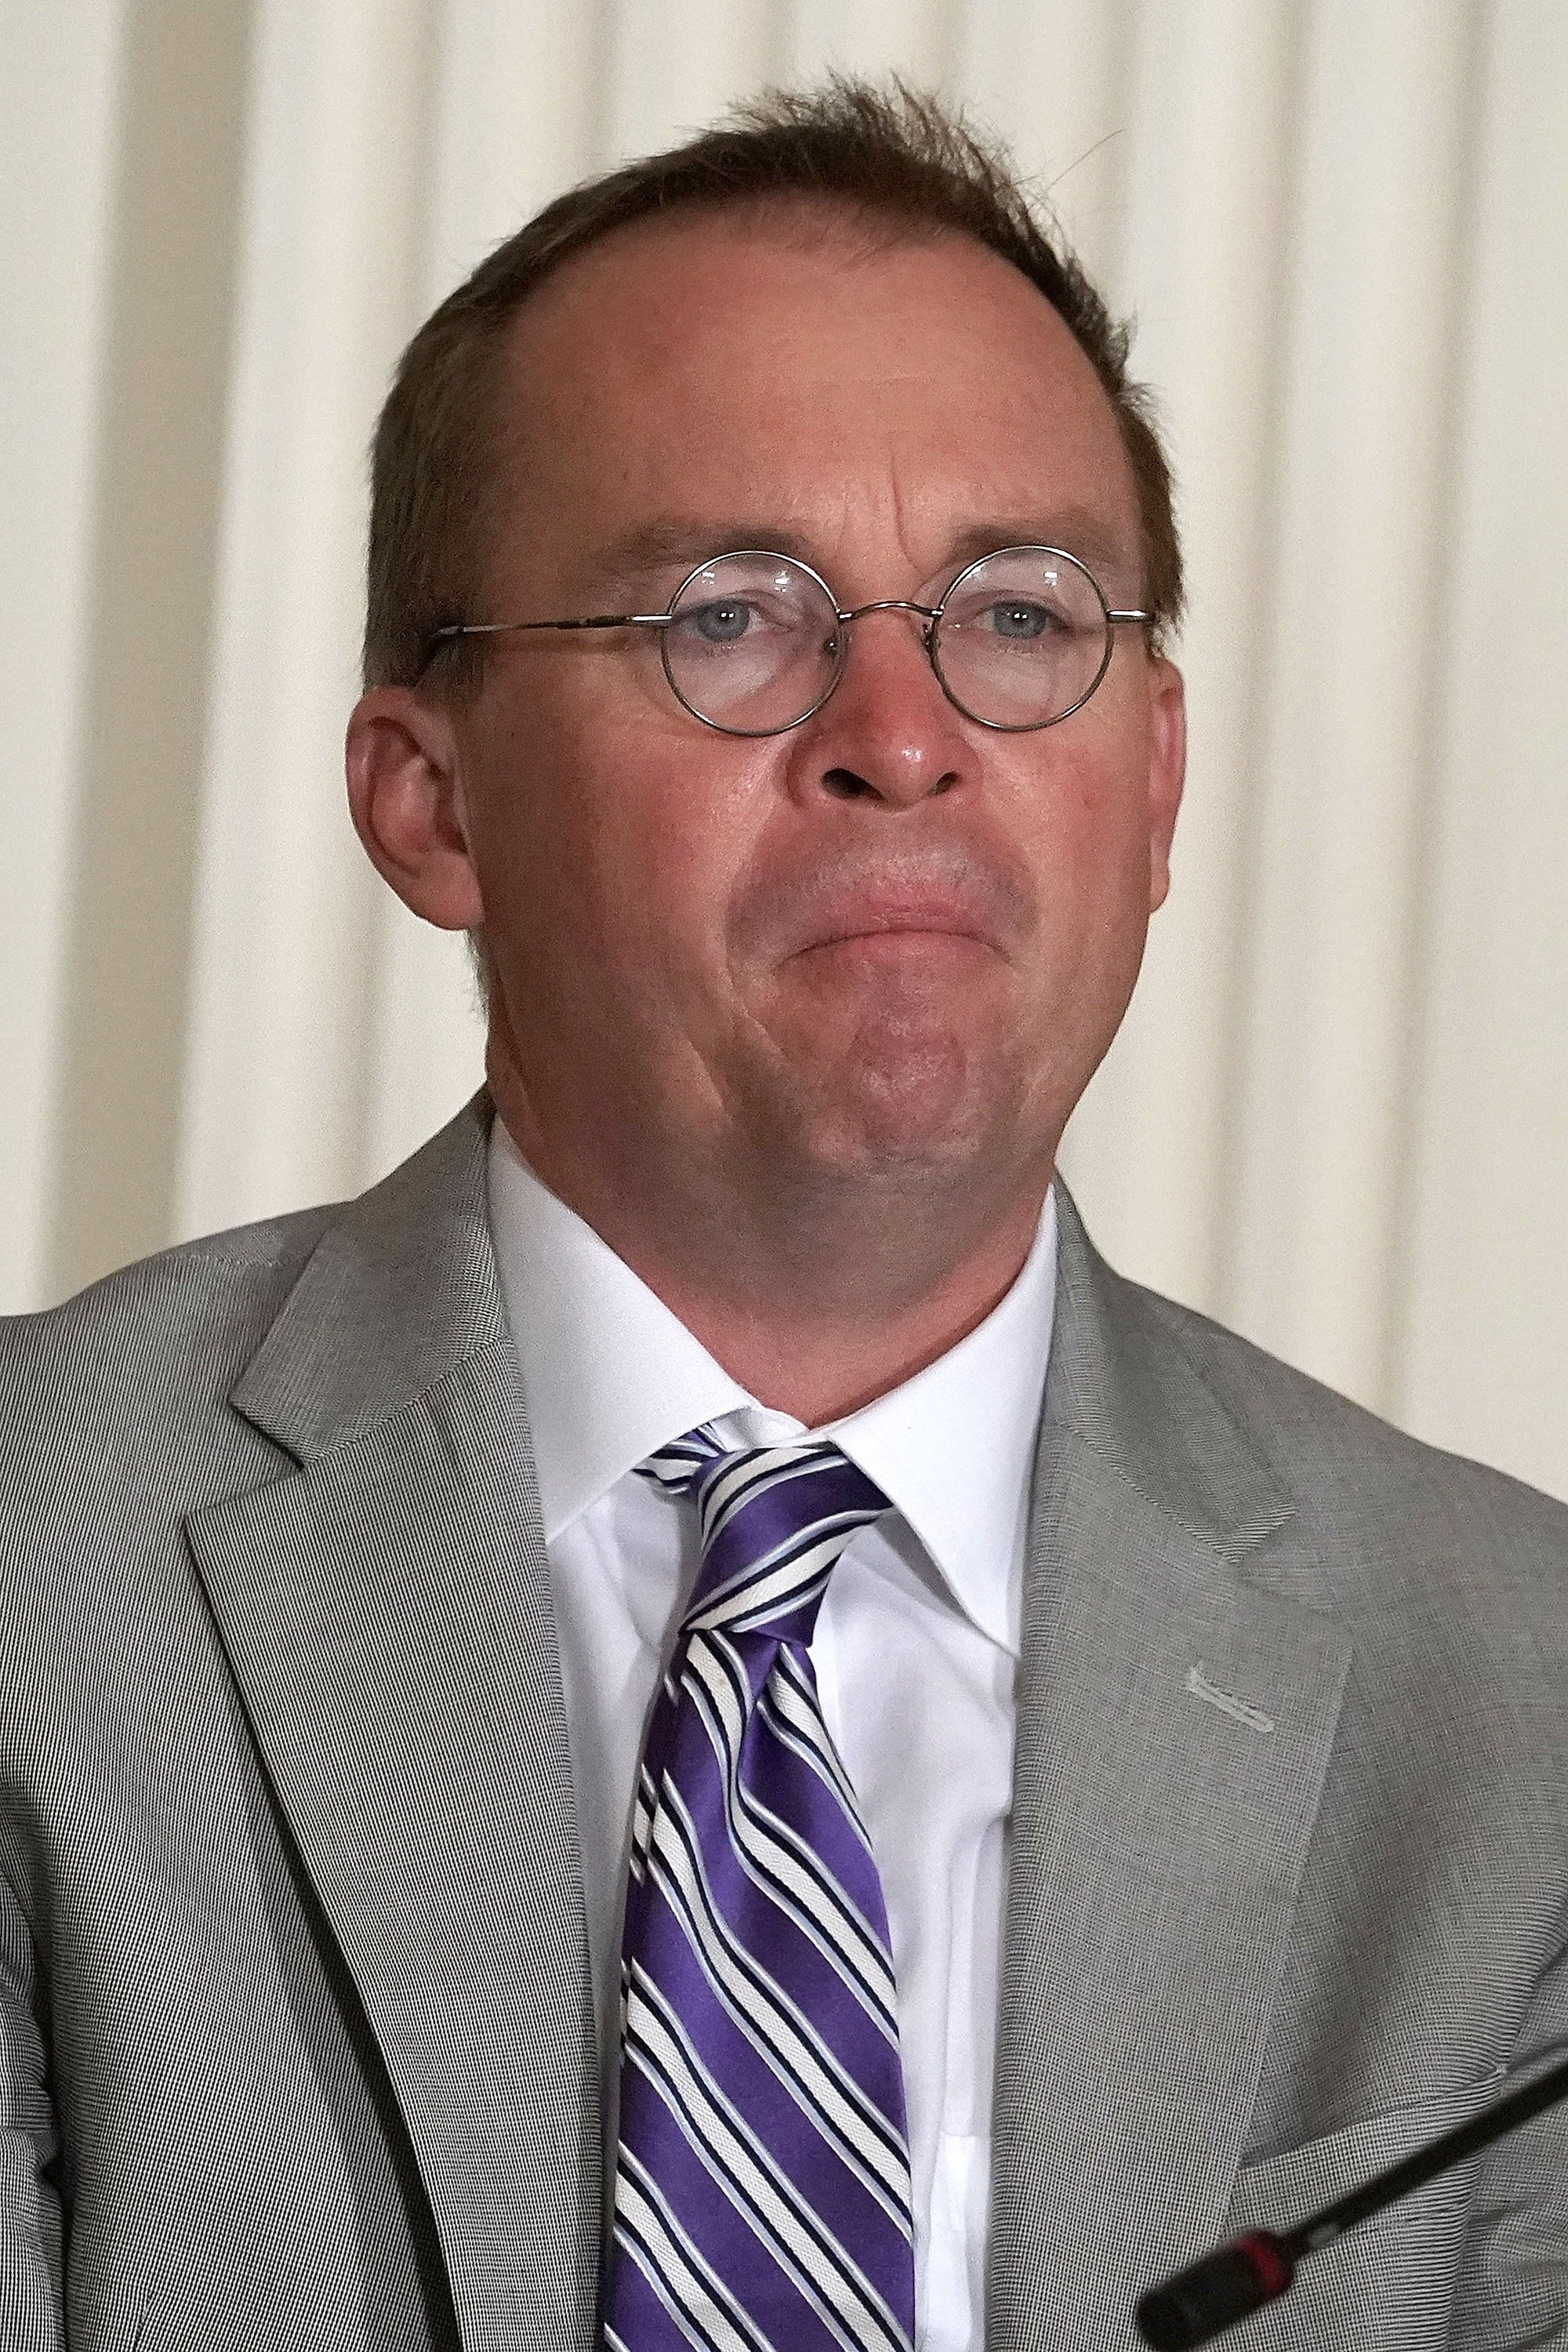 WASHINGTON, DC - JUNE 18:  Director of the Office of Management and Budget Mick Mulvaney listens during a meeting of the National Space Council at the East Room of the White House June 18, 2018 in Washington, DC. President Donald Trump signed an executive order to establish the Space Force, an independent and co-equal military branch, as the sixth branch of the U.S. armed forces.  (Photo by Alex Wong/Getty Images)